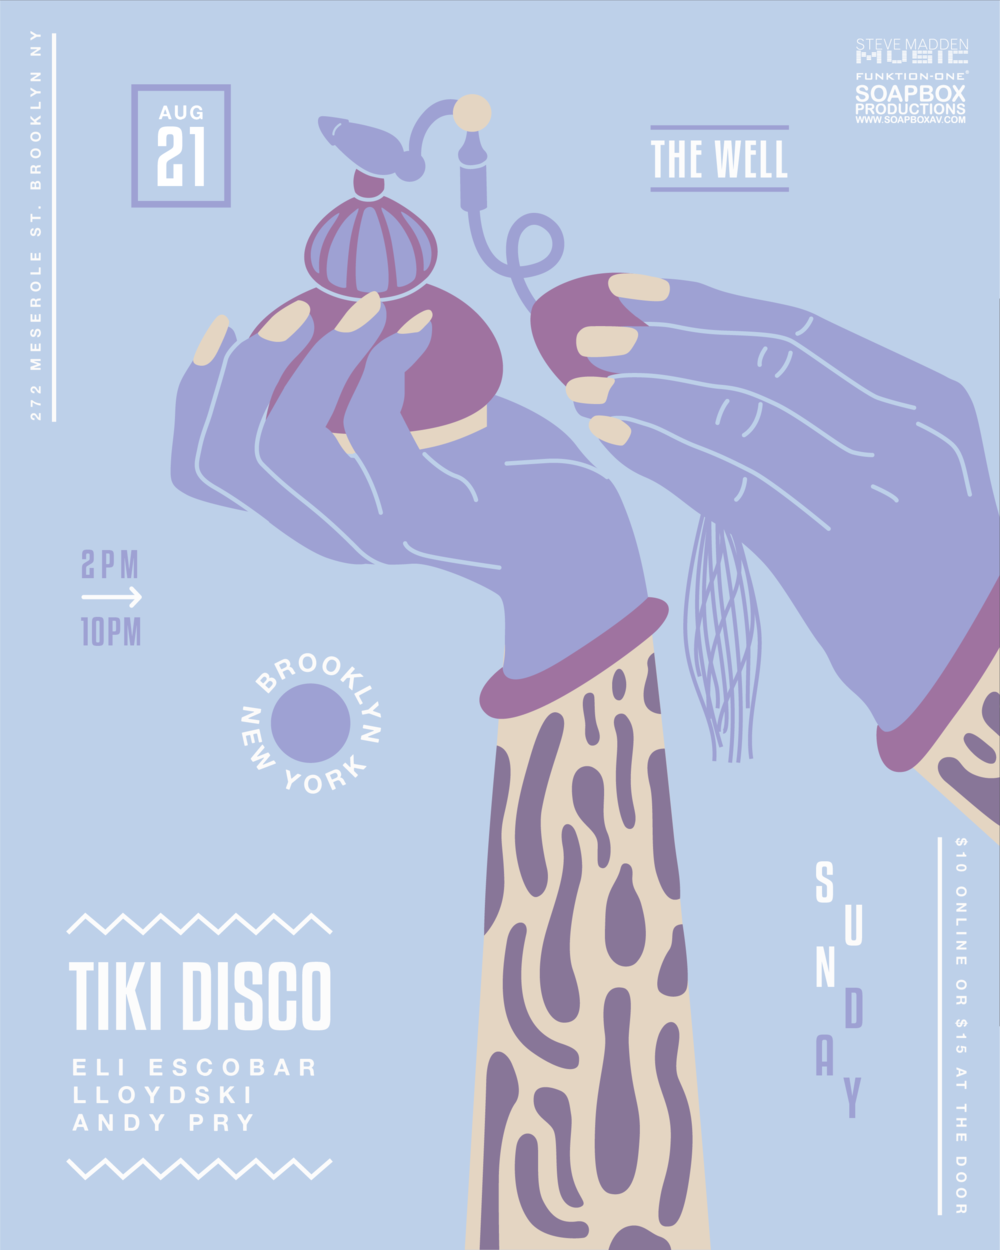 2016-08-09_tikidisco_poster_01-06.png